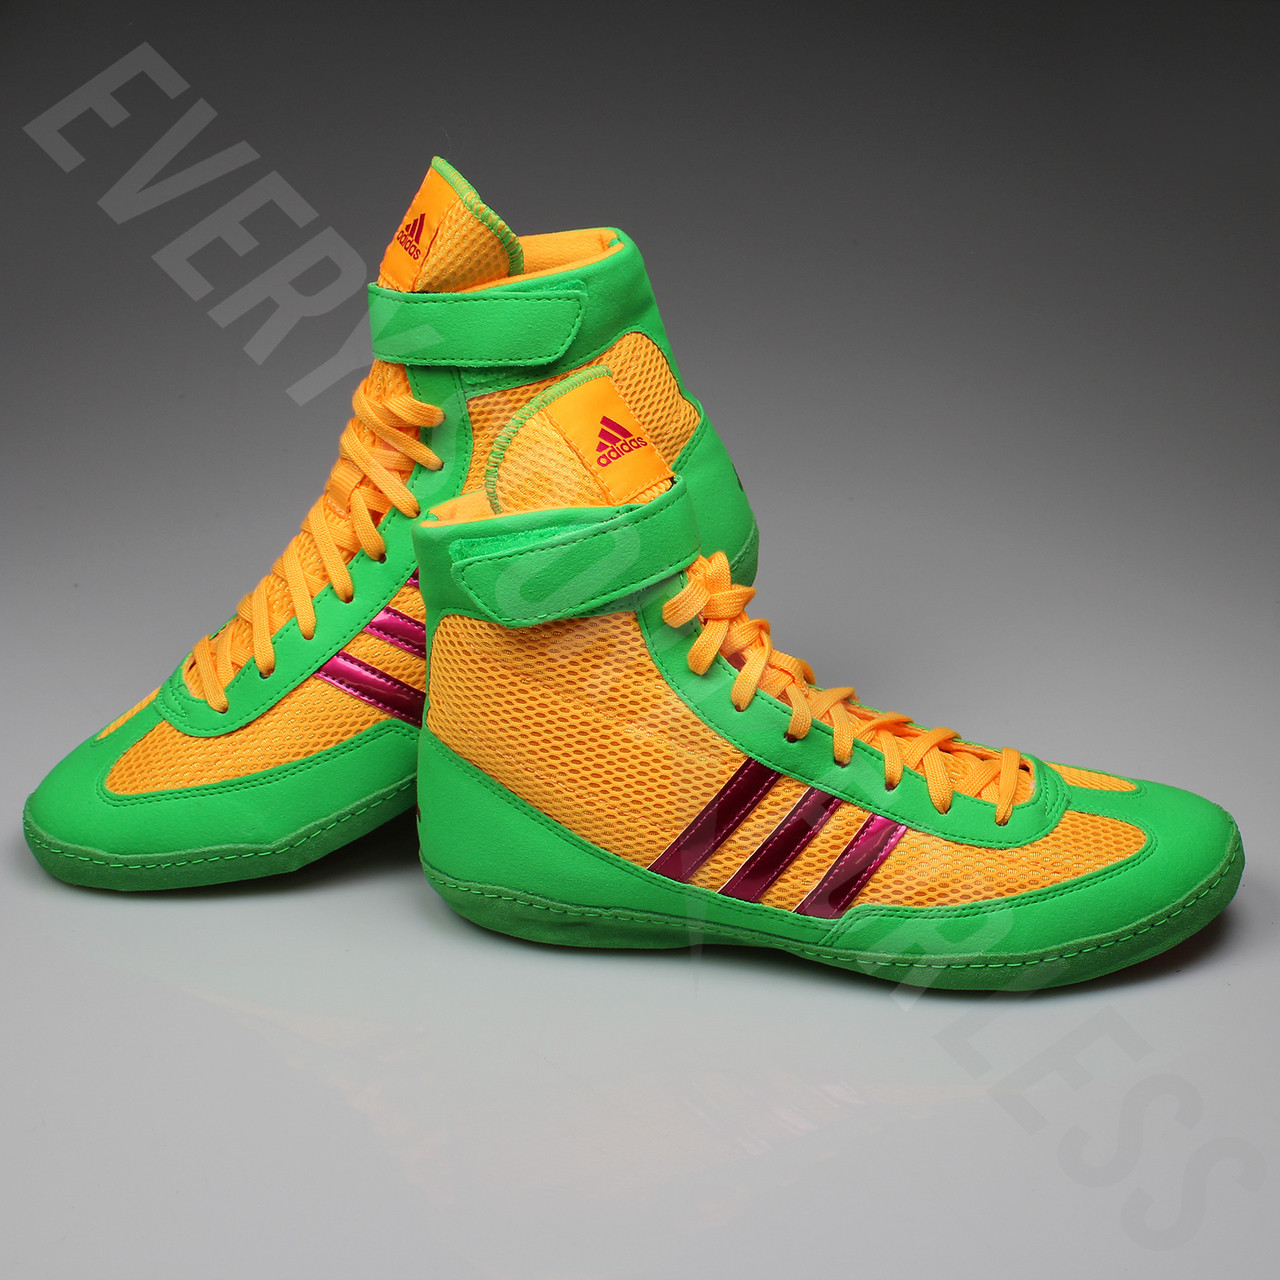 huge selection of f0fbb a0656 ... Adidas Combat Speed 4 Wrestling Shoes AQ3059 -Gold Pink Lime ...